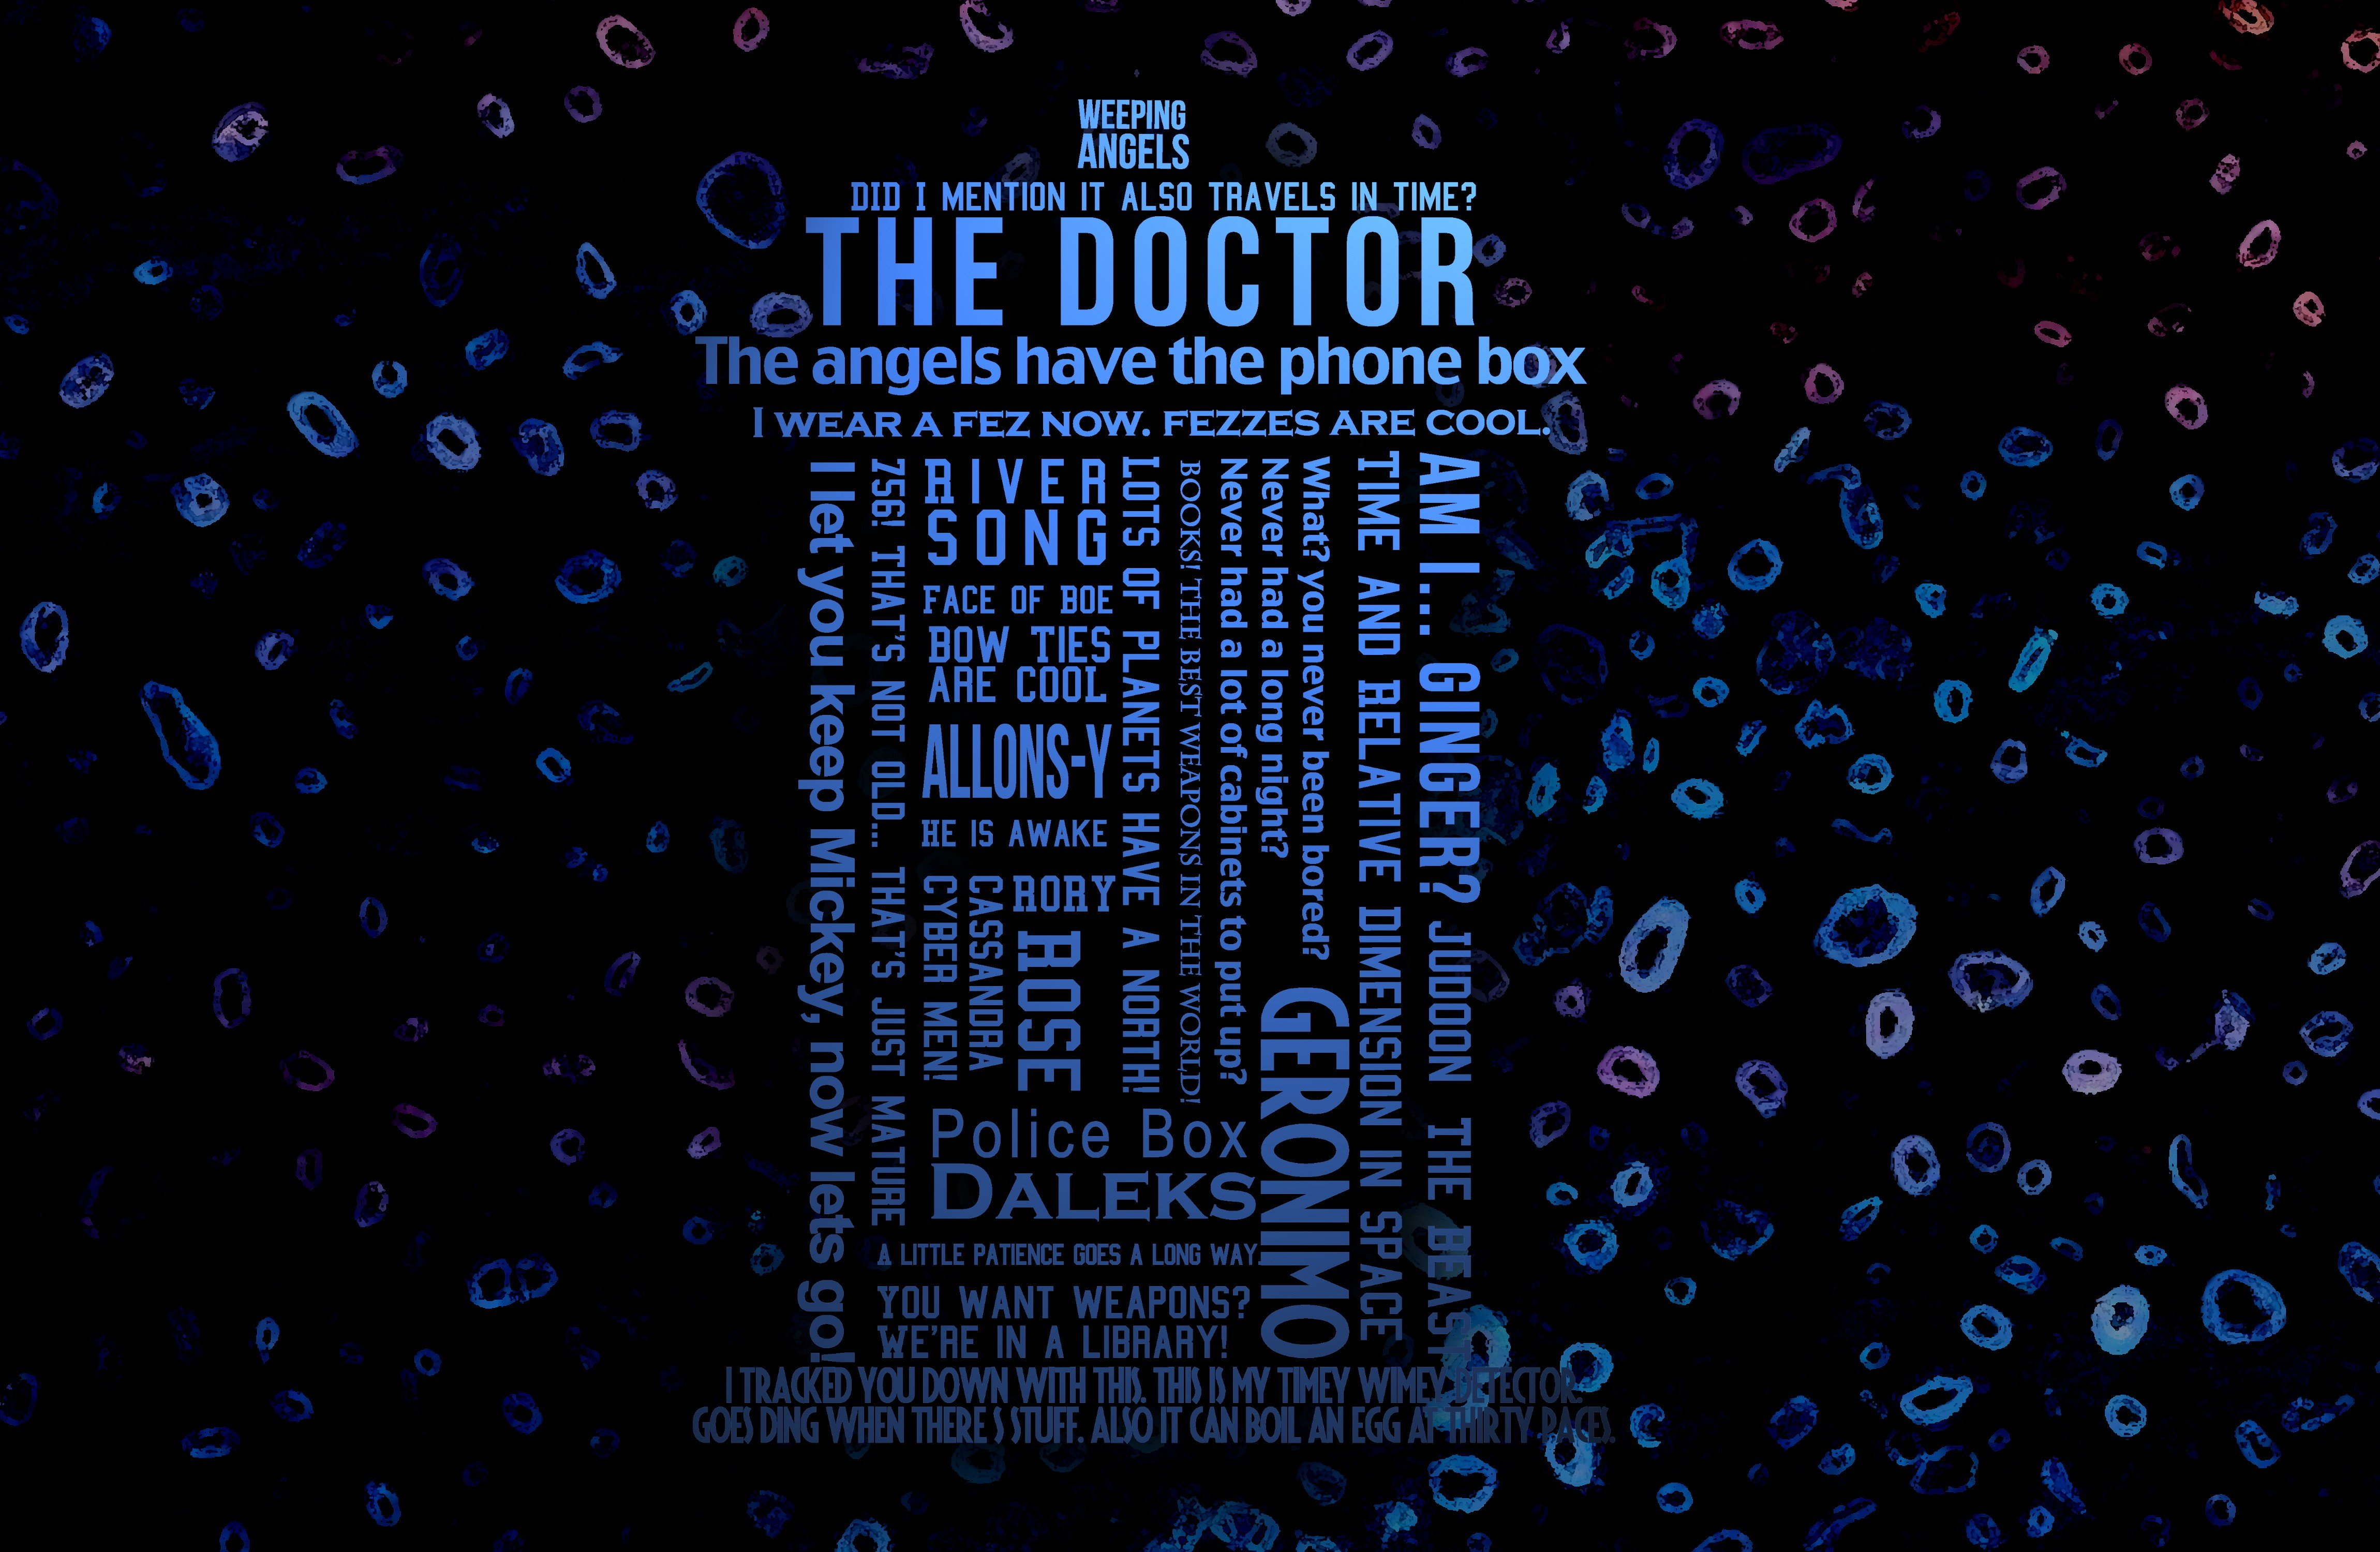 Doctor Who Tardis Wallpaper High Definition 5K 8K